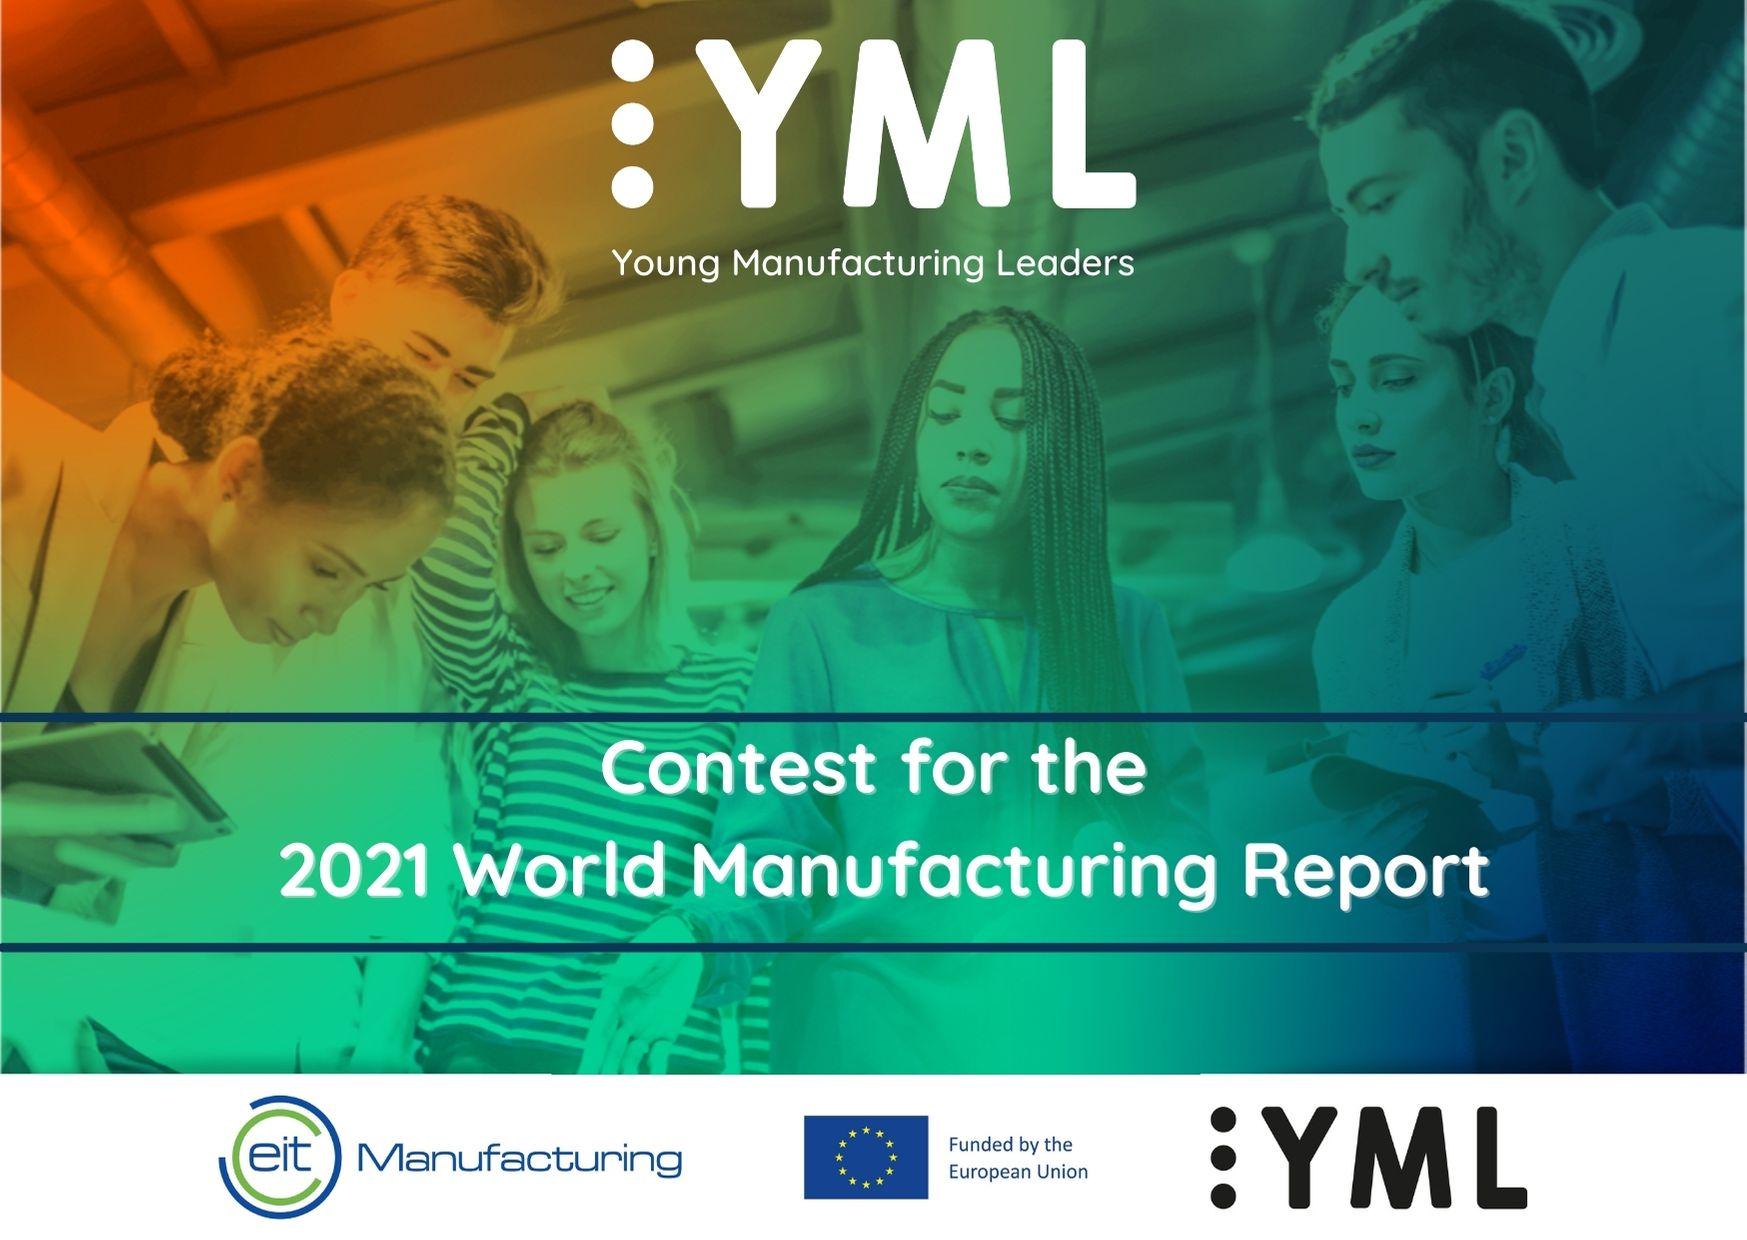 YML Contest for the 2021 World Manufacturing Report